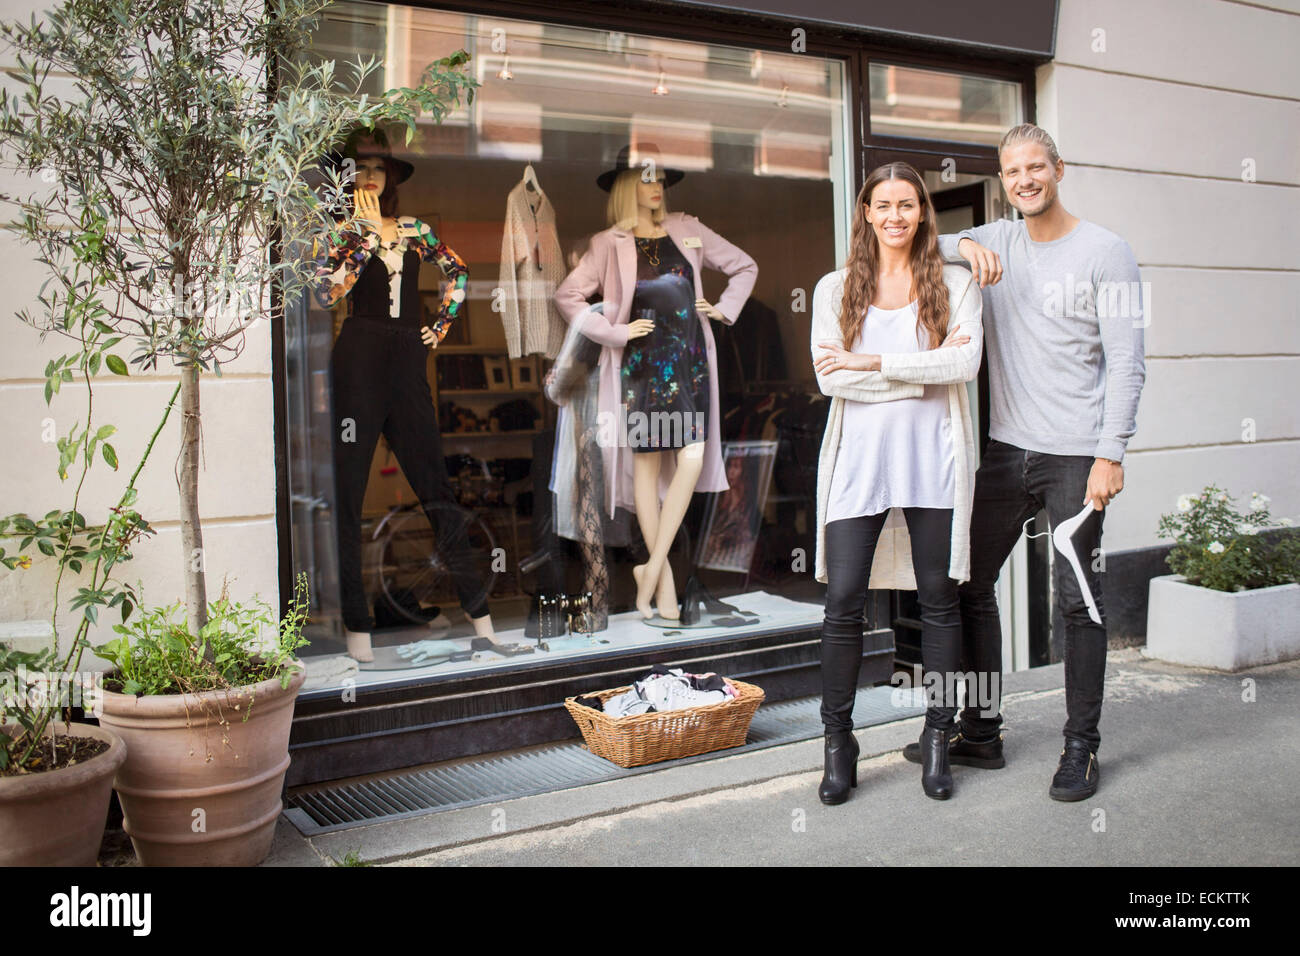 Portrait of smiling owner with female worker standing in front of clothing store - Stock Image